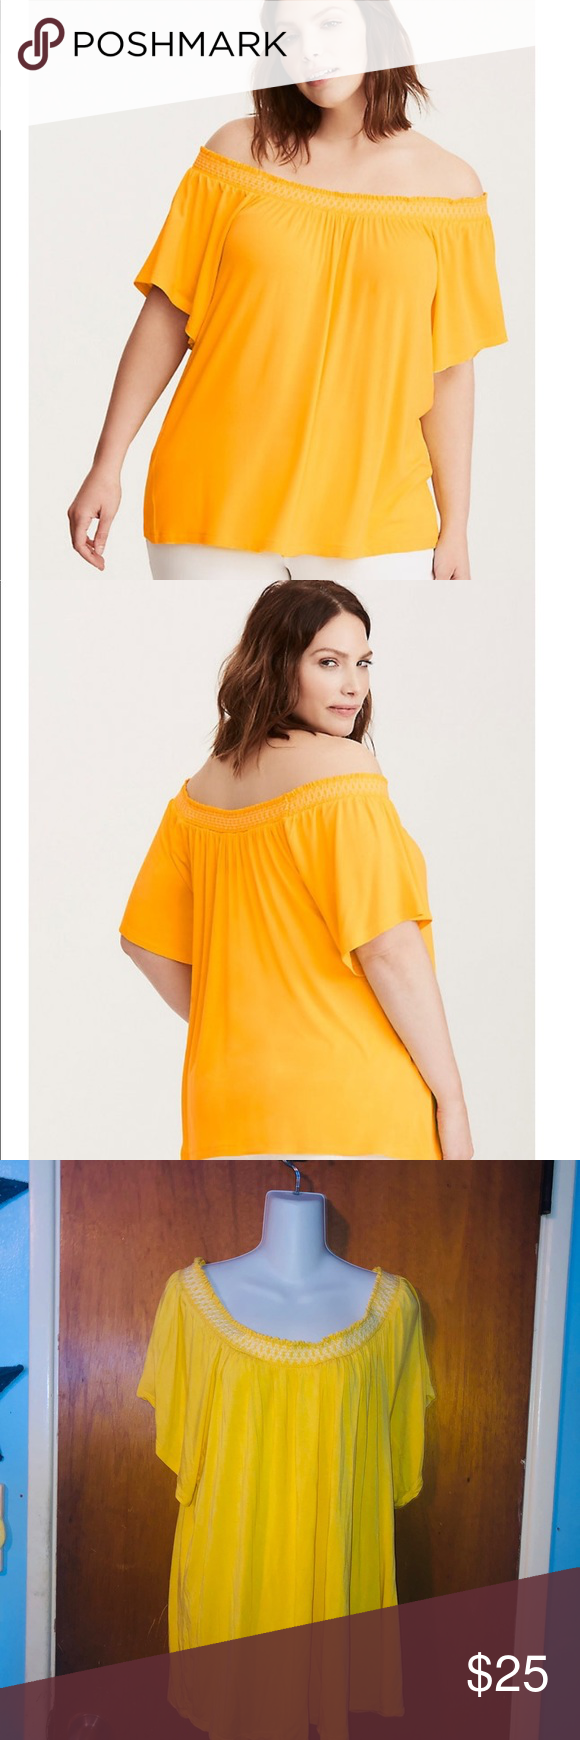 8542283a1c3 Torrid Embroidered Smocked Off Shoulder Top Torrid 2 Yellow Embroidered  Smocked Off Shoulder Top. Sun